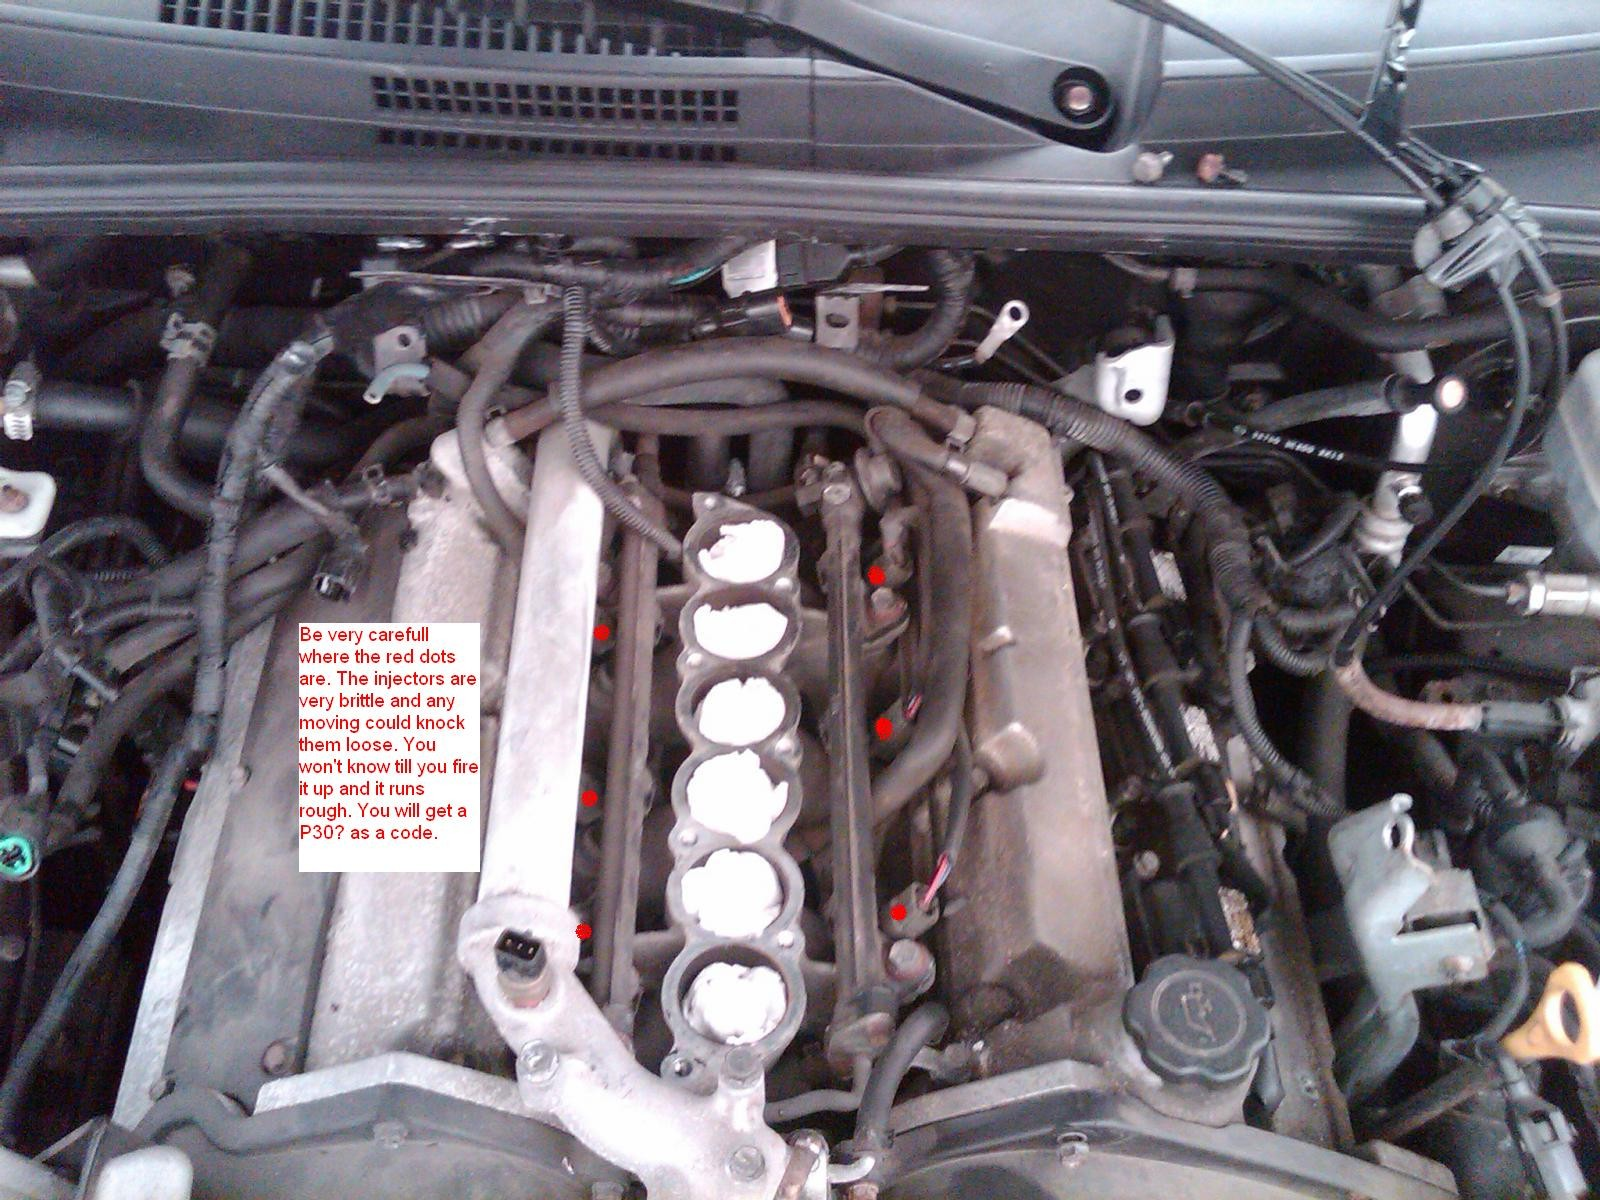 2004 Kia Sorento Engine Diagram Sportage Wiring With Rio Schematic Fuel Injector And Or Spark Plugs Diy Help Forum Of